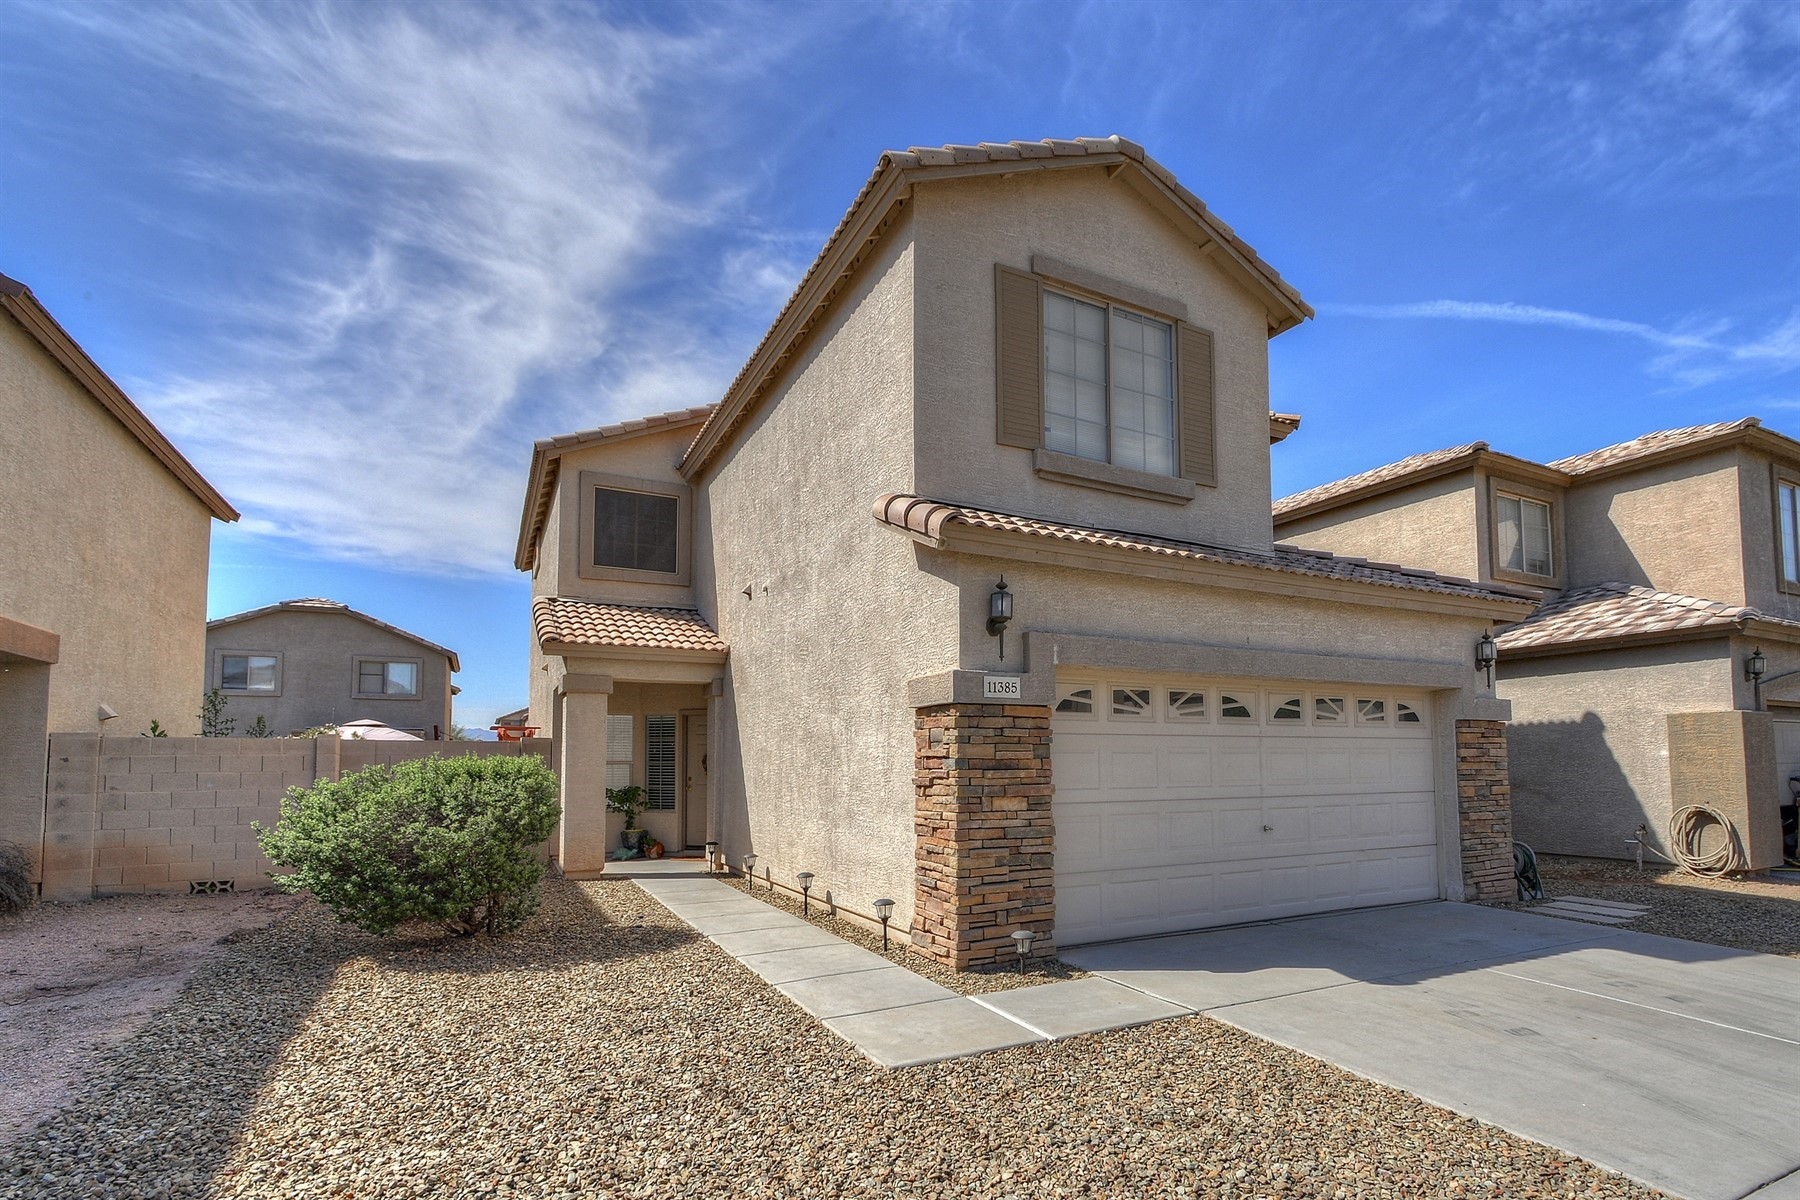 single family homes for Active at Welcome Home! 11385 W Yuma St Avondale, Arizona 85323 United States